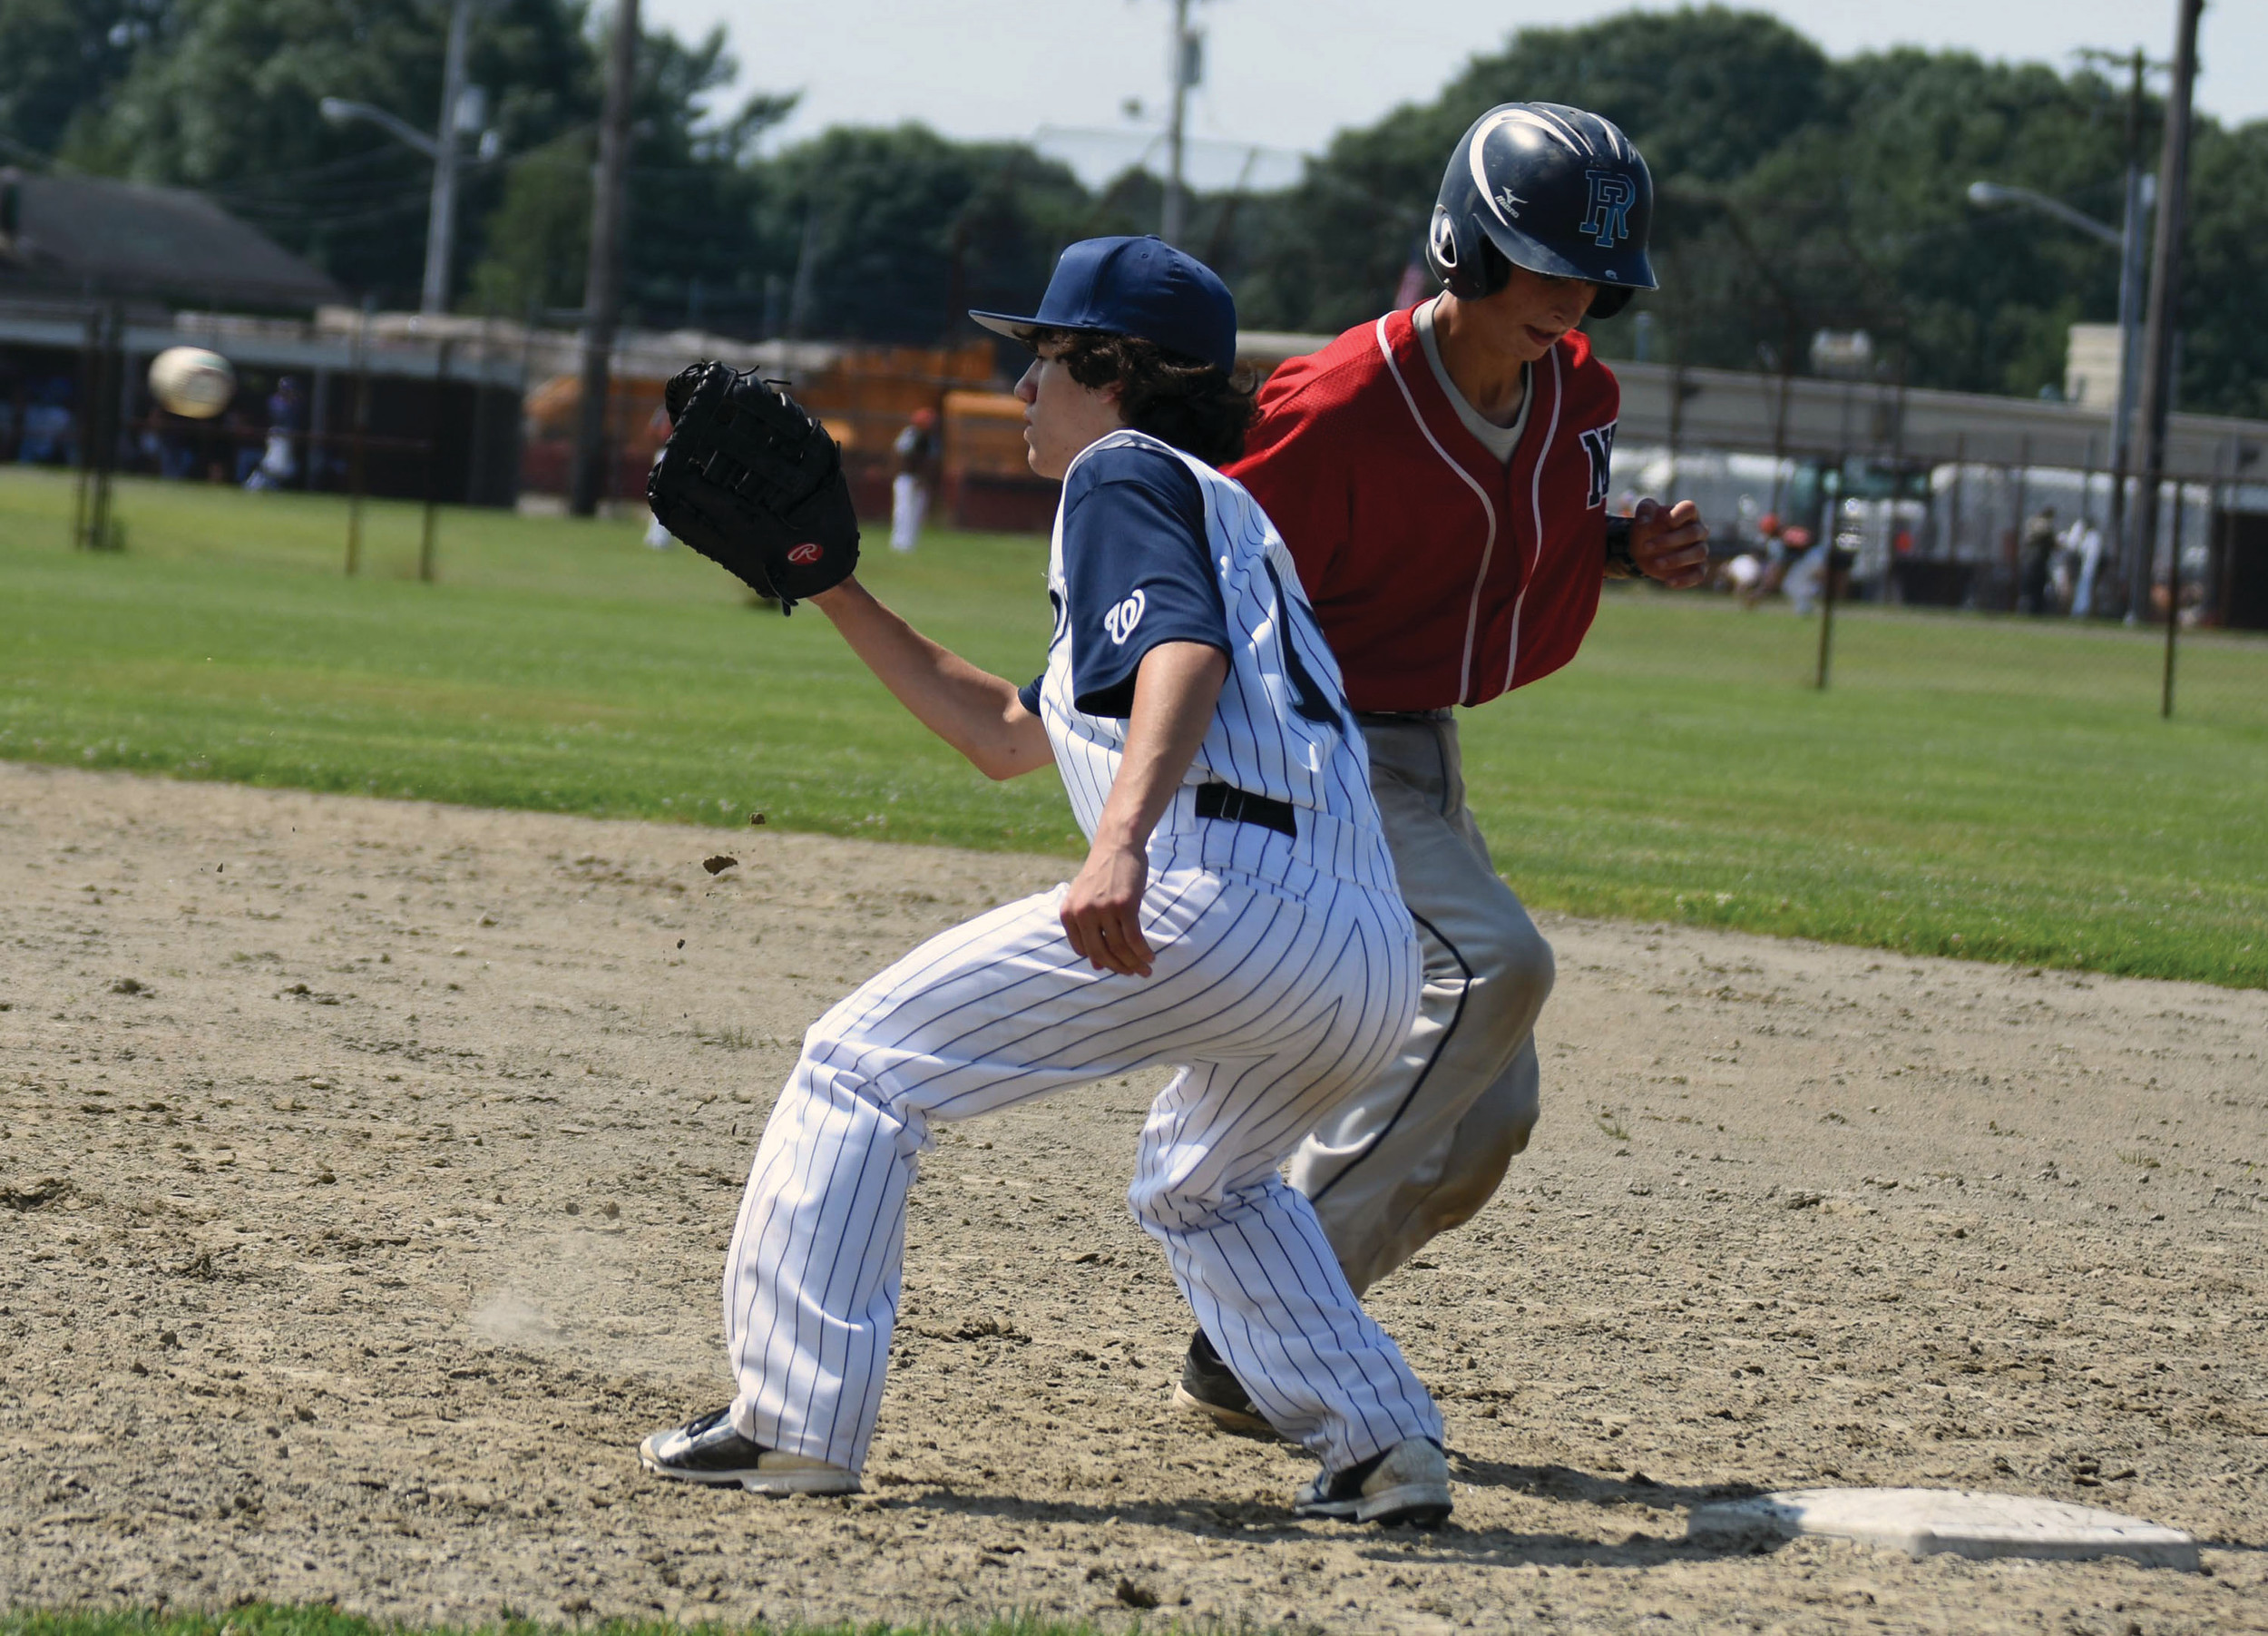 SHUTOUT: Warwick PAL improved to 3-2 in the Connie Mack standings with a 9-0 rout of the Narragansett Lions on Saturday at Mickey Stevens. Above, first baseman Derek Lallo waits on a pick-off throw.